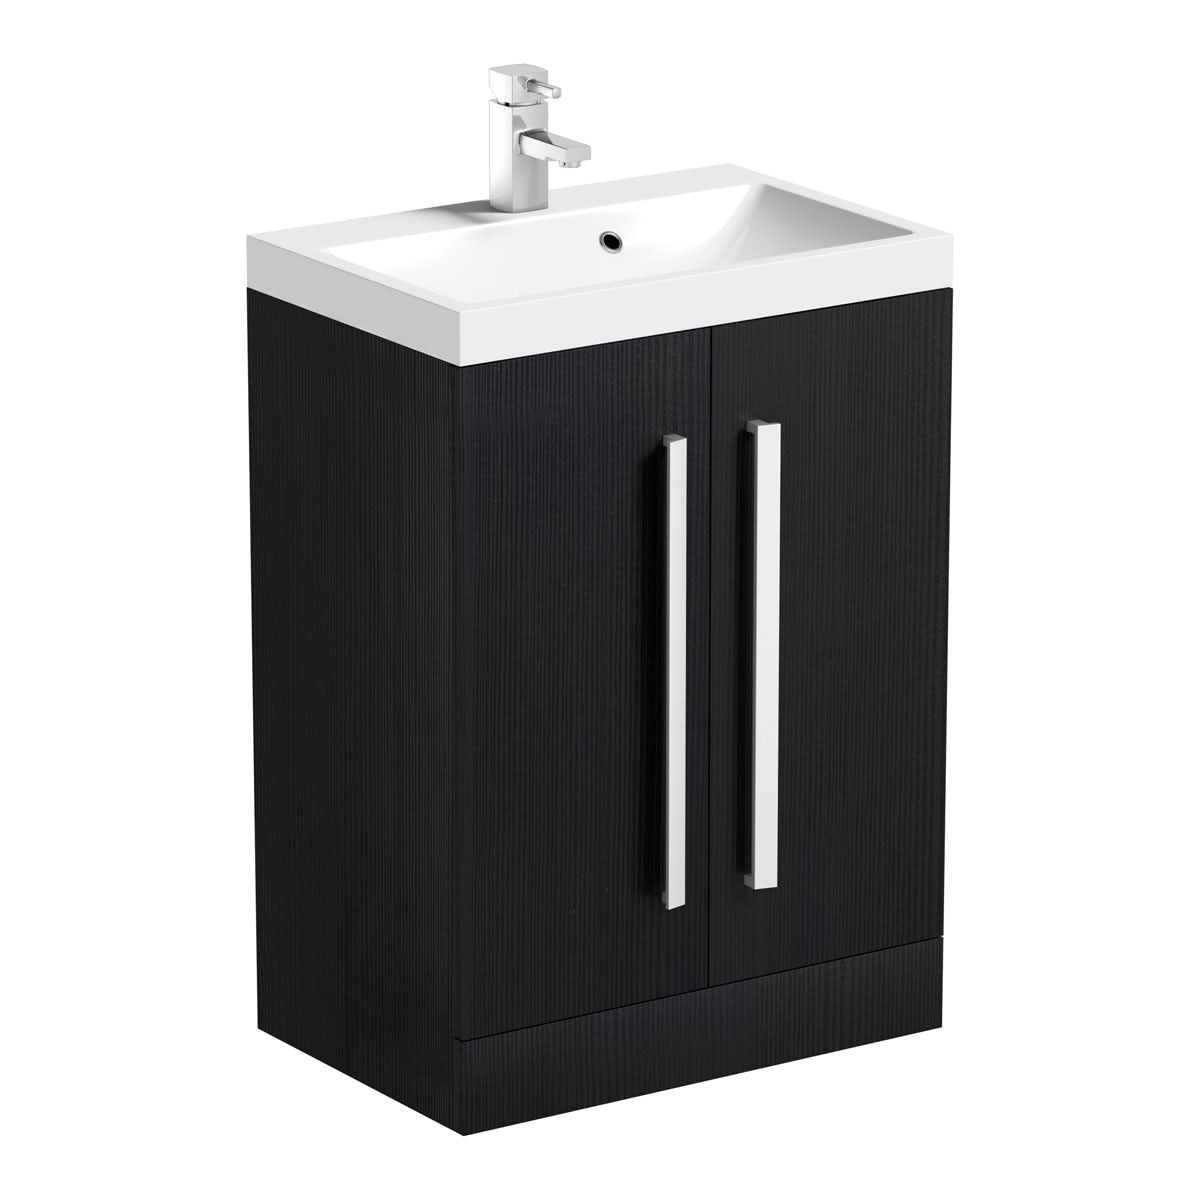 Orchard Wye essen vanity unit with basin 600mm